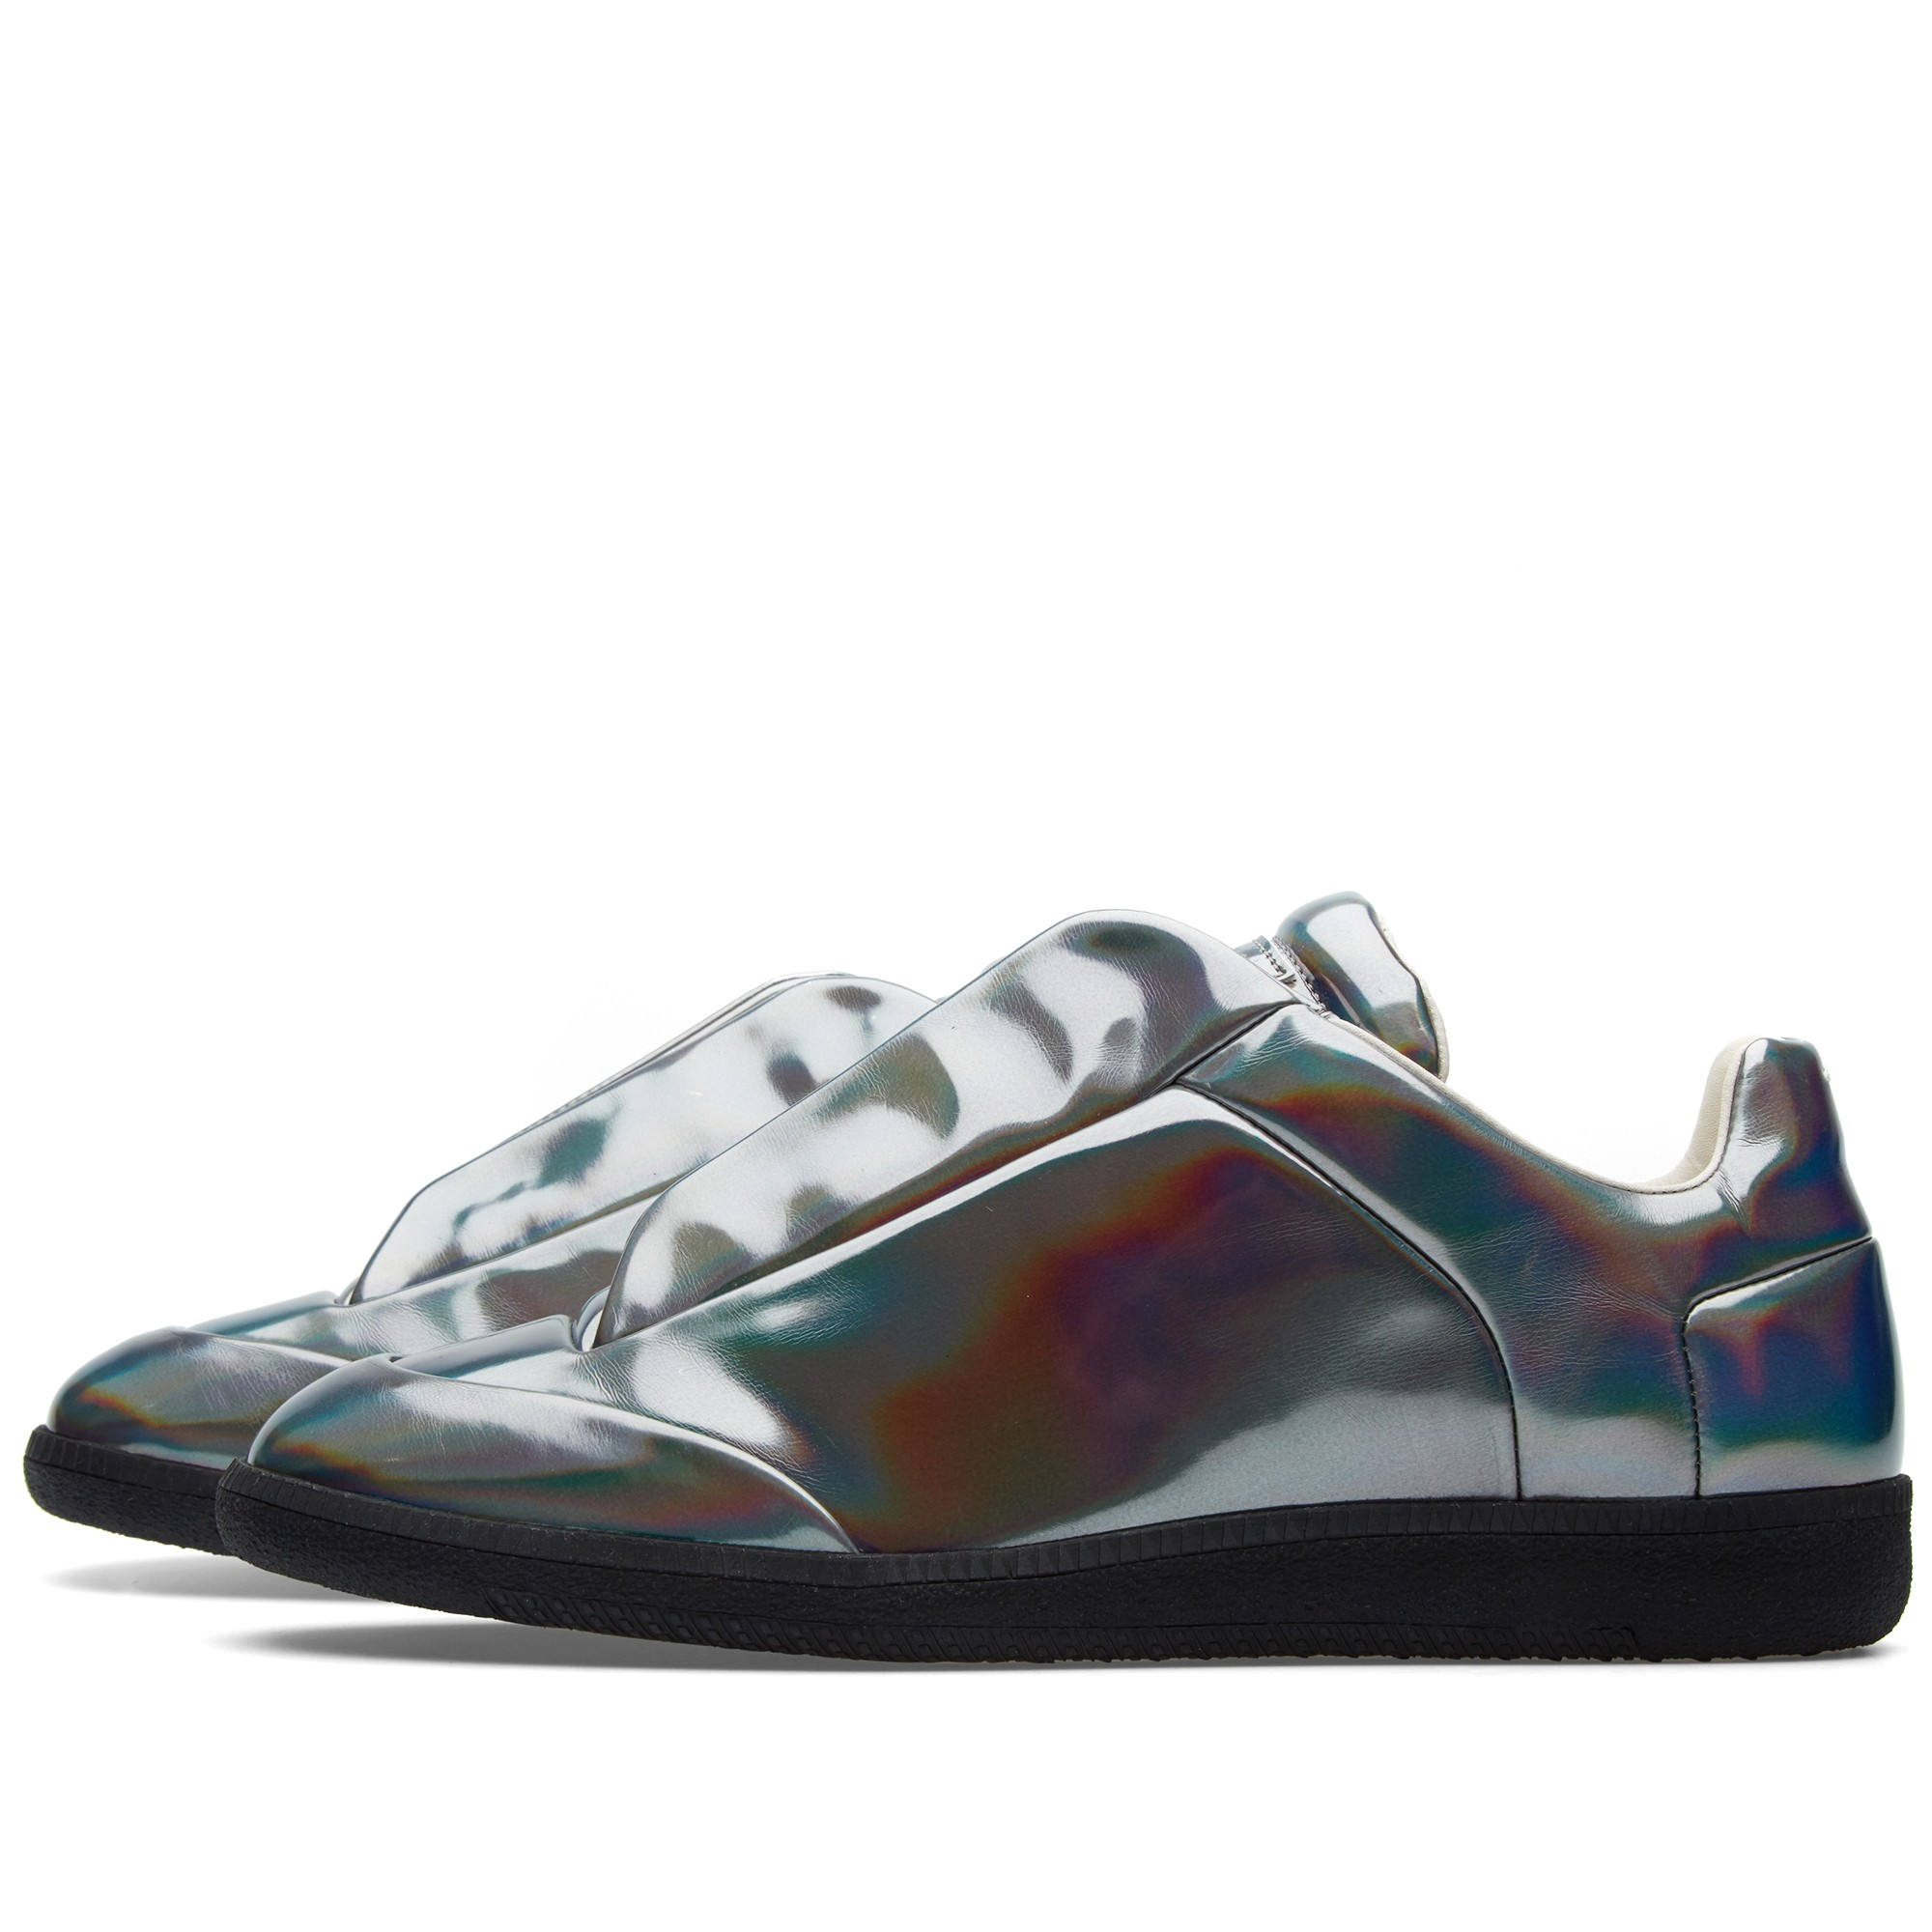 Maison-Margiela-22-Future-Low